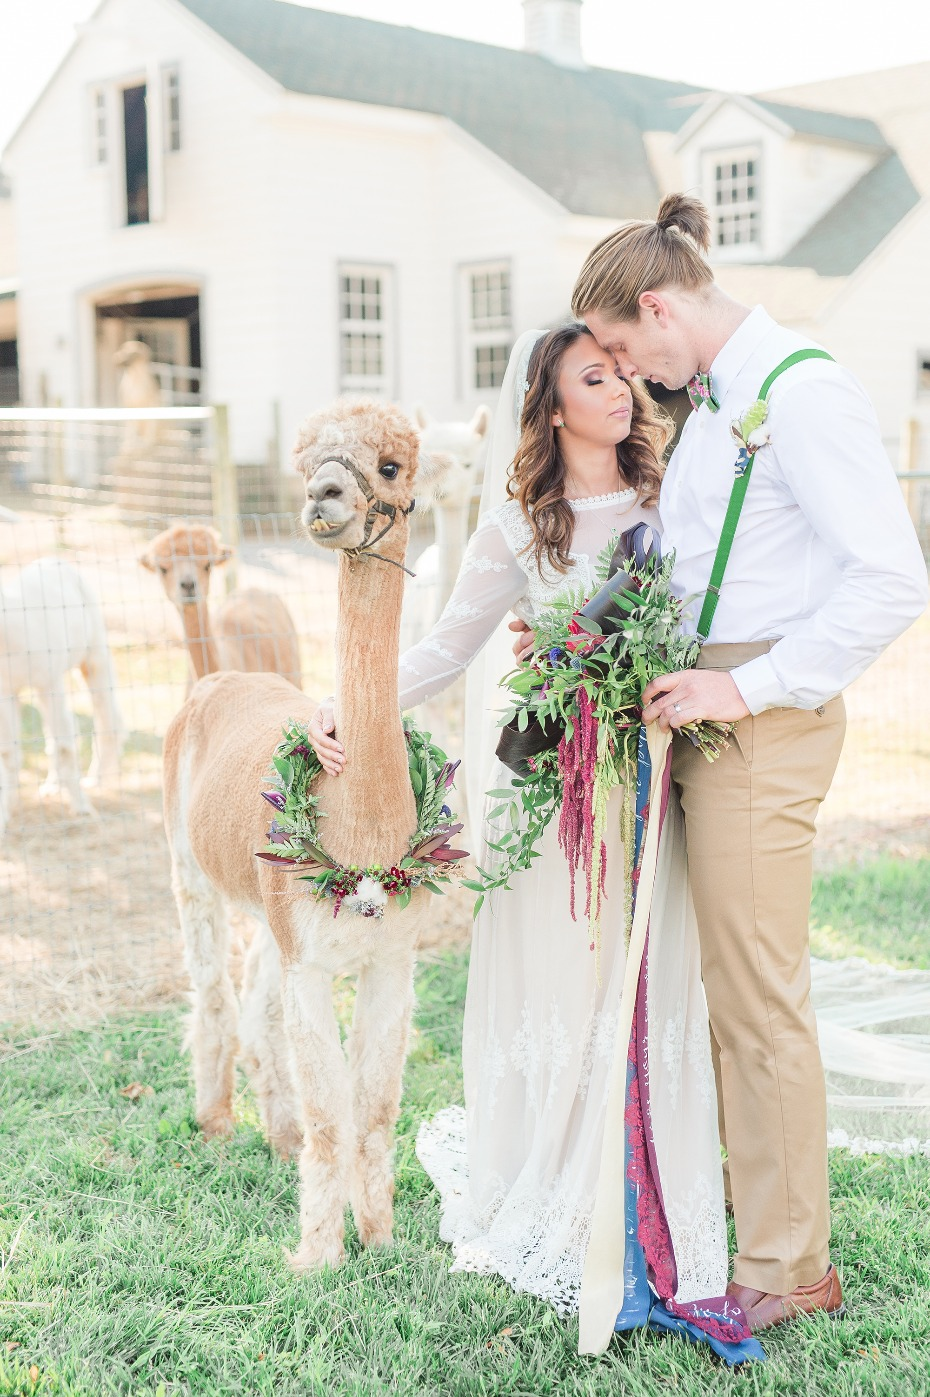 Alpaca farm wedding ideas we love!